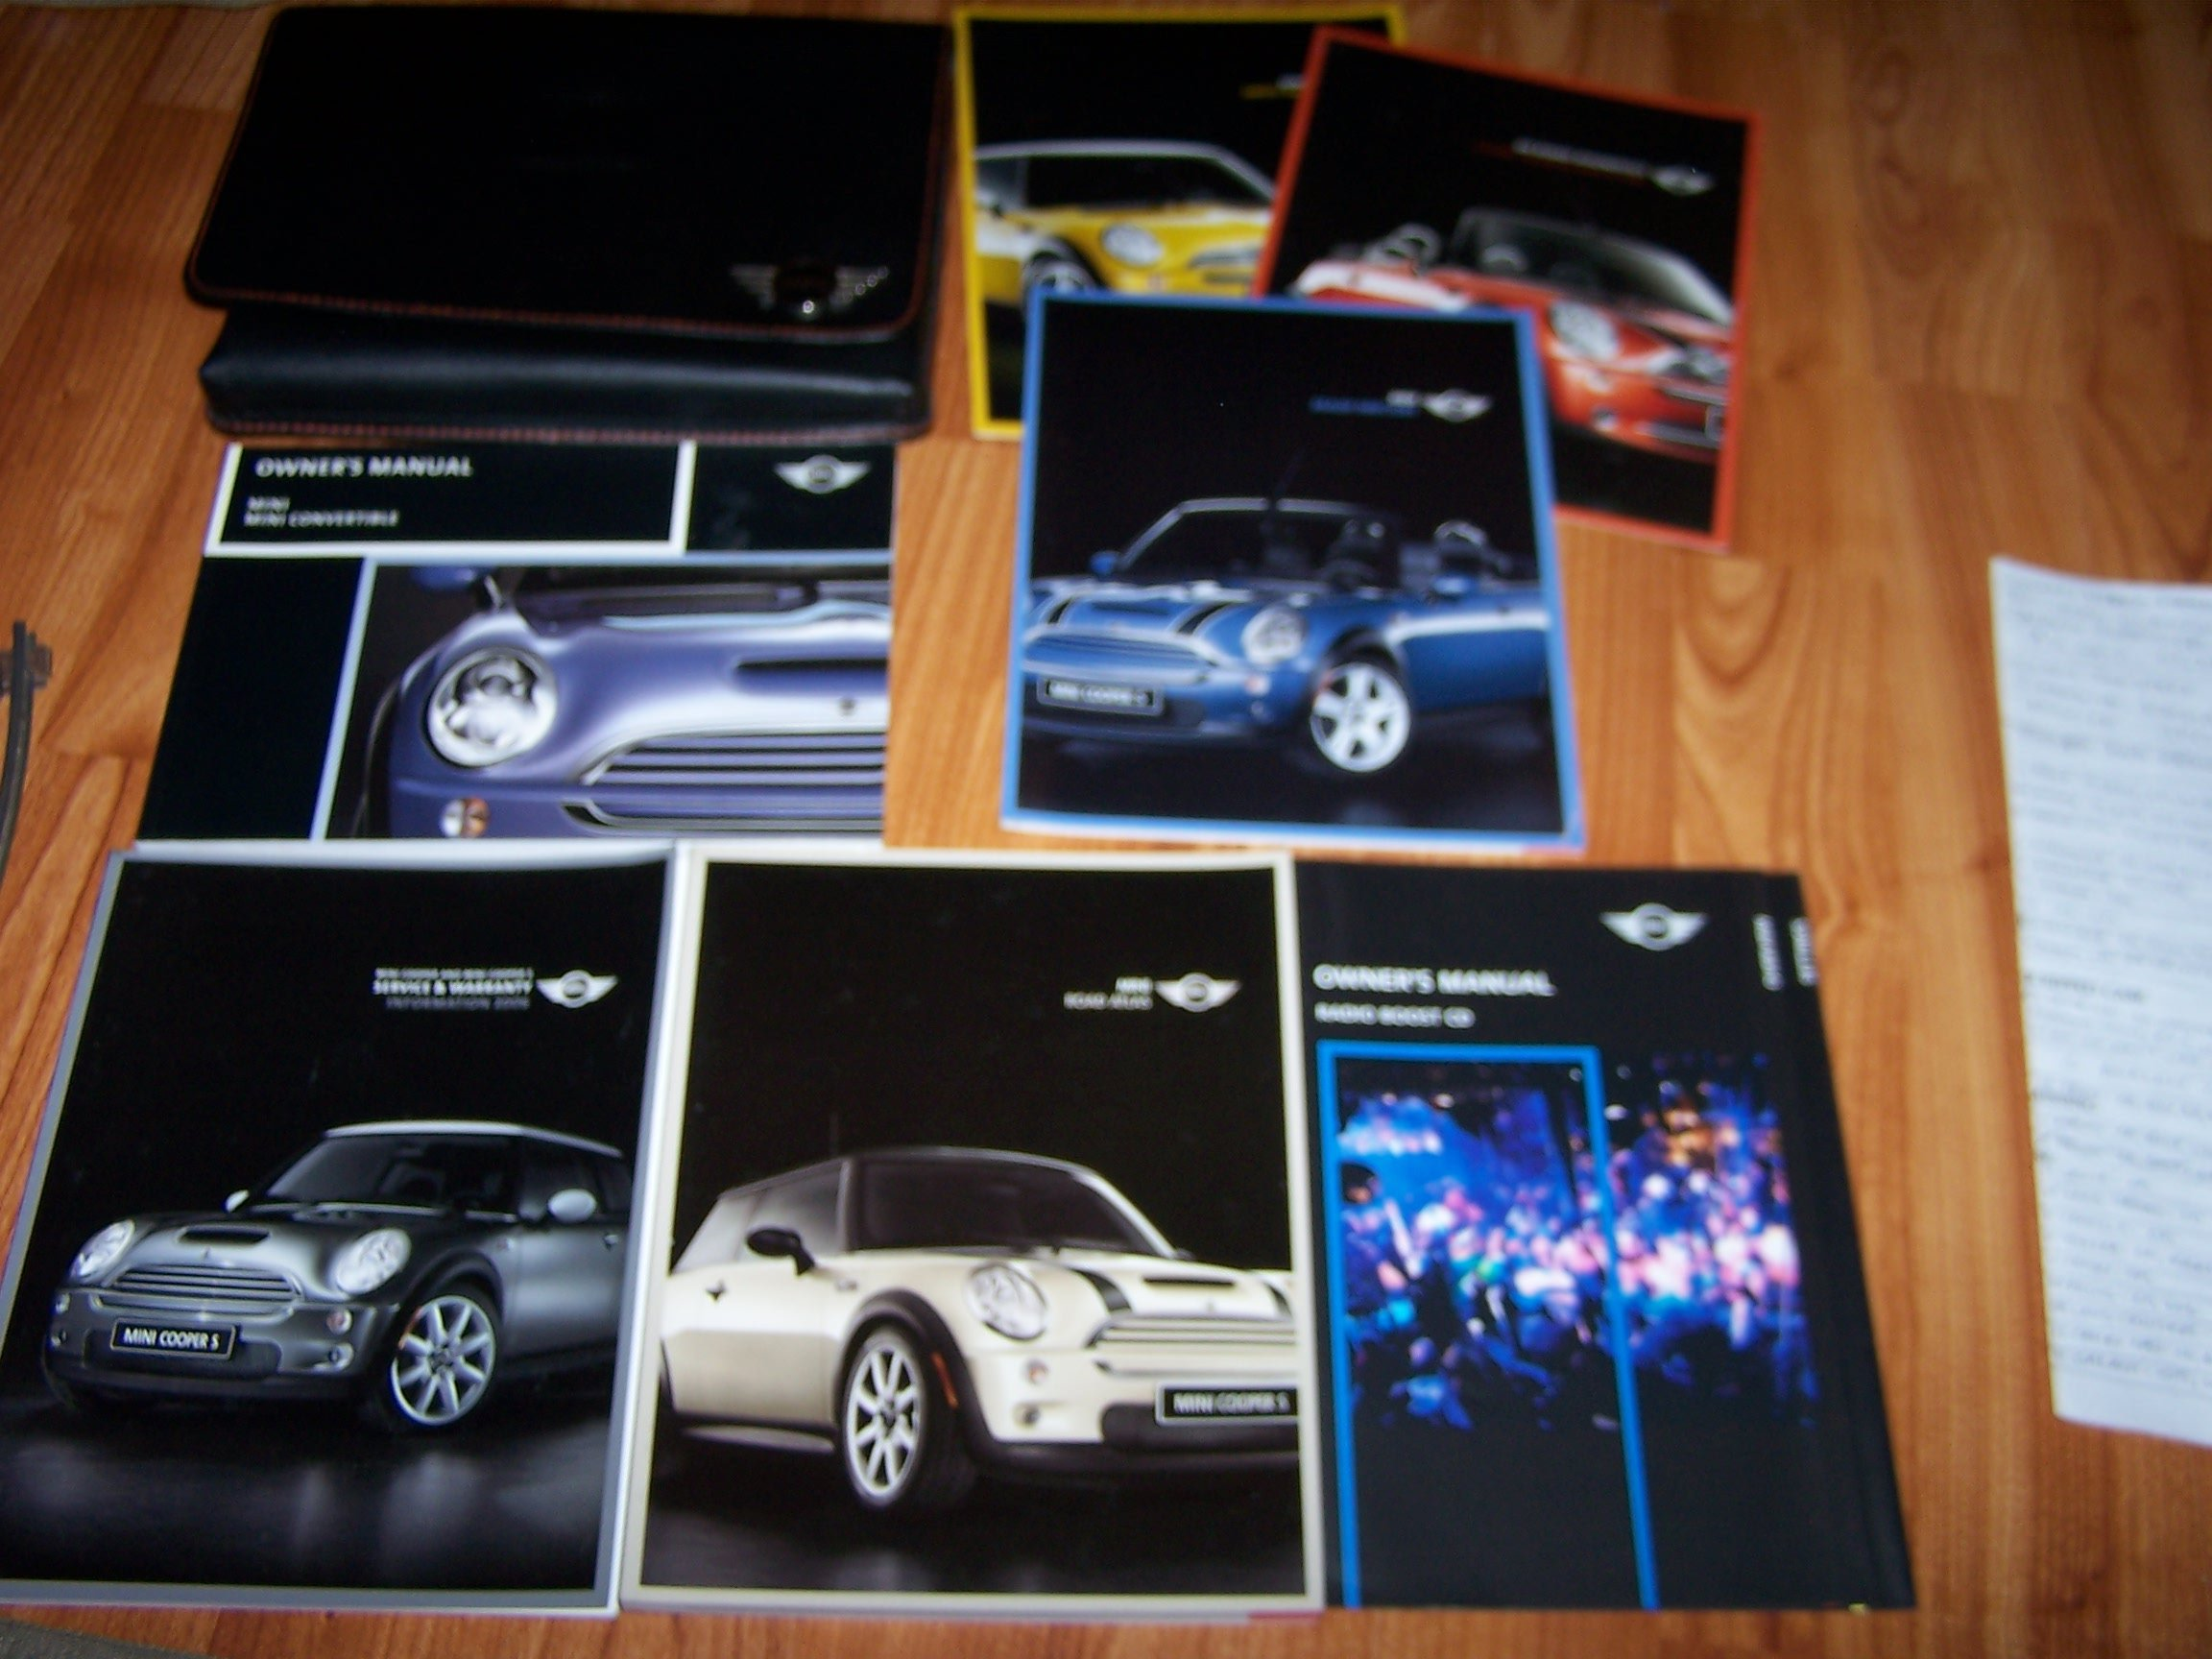 Bmw 2006 mini cooper s convertible owners manual by i9760 issuu.